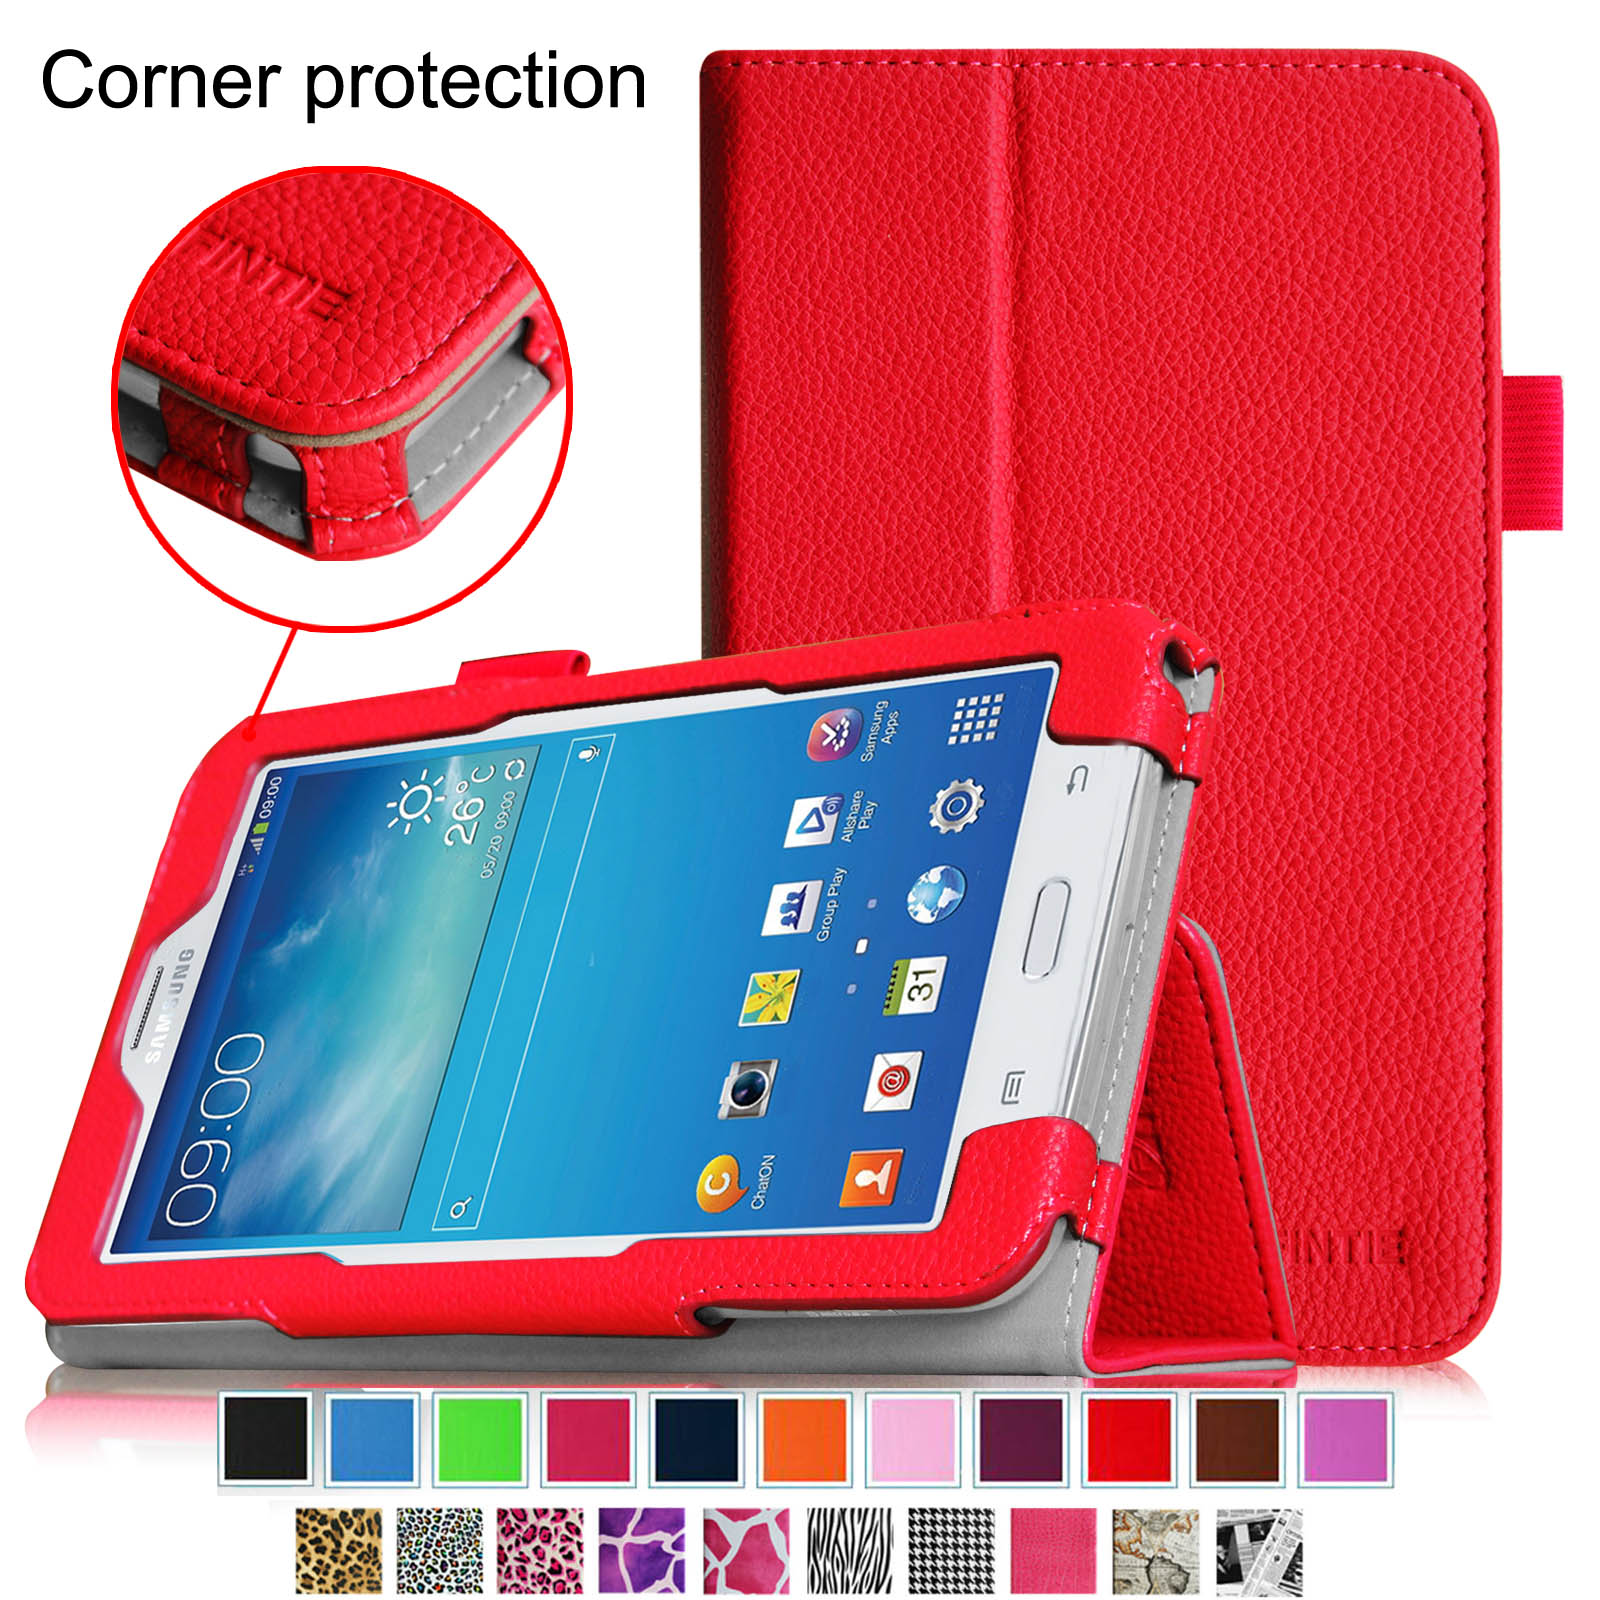 Fintie Samsung Galaxy Tab E Lite 7.0 SM-T113 / Tab 3 Lite 7.0 SM-T110 SM-T111 Tablet Case Slim Fit Folio Cover, Red